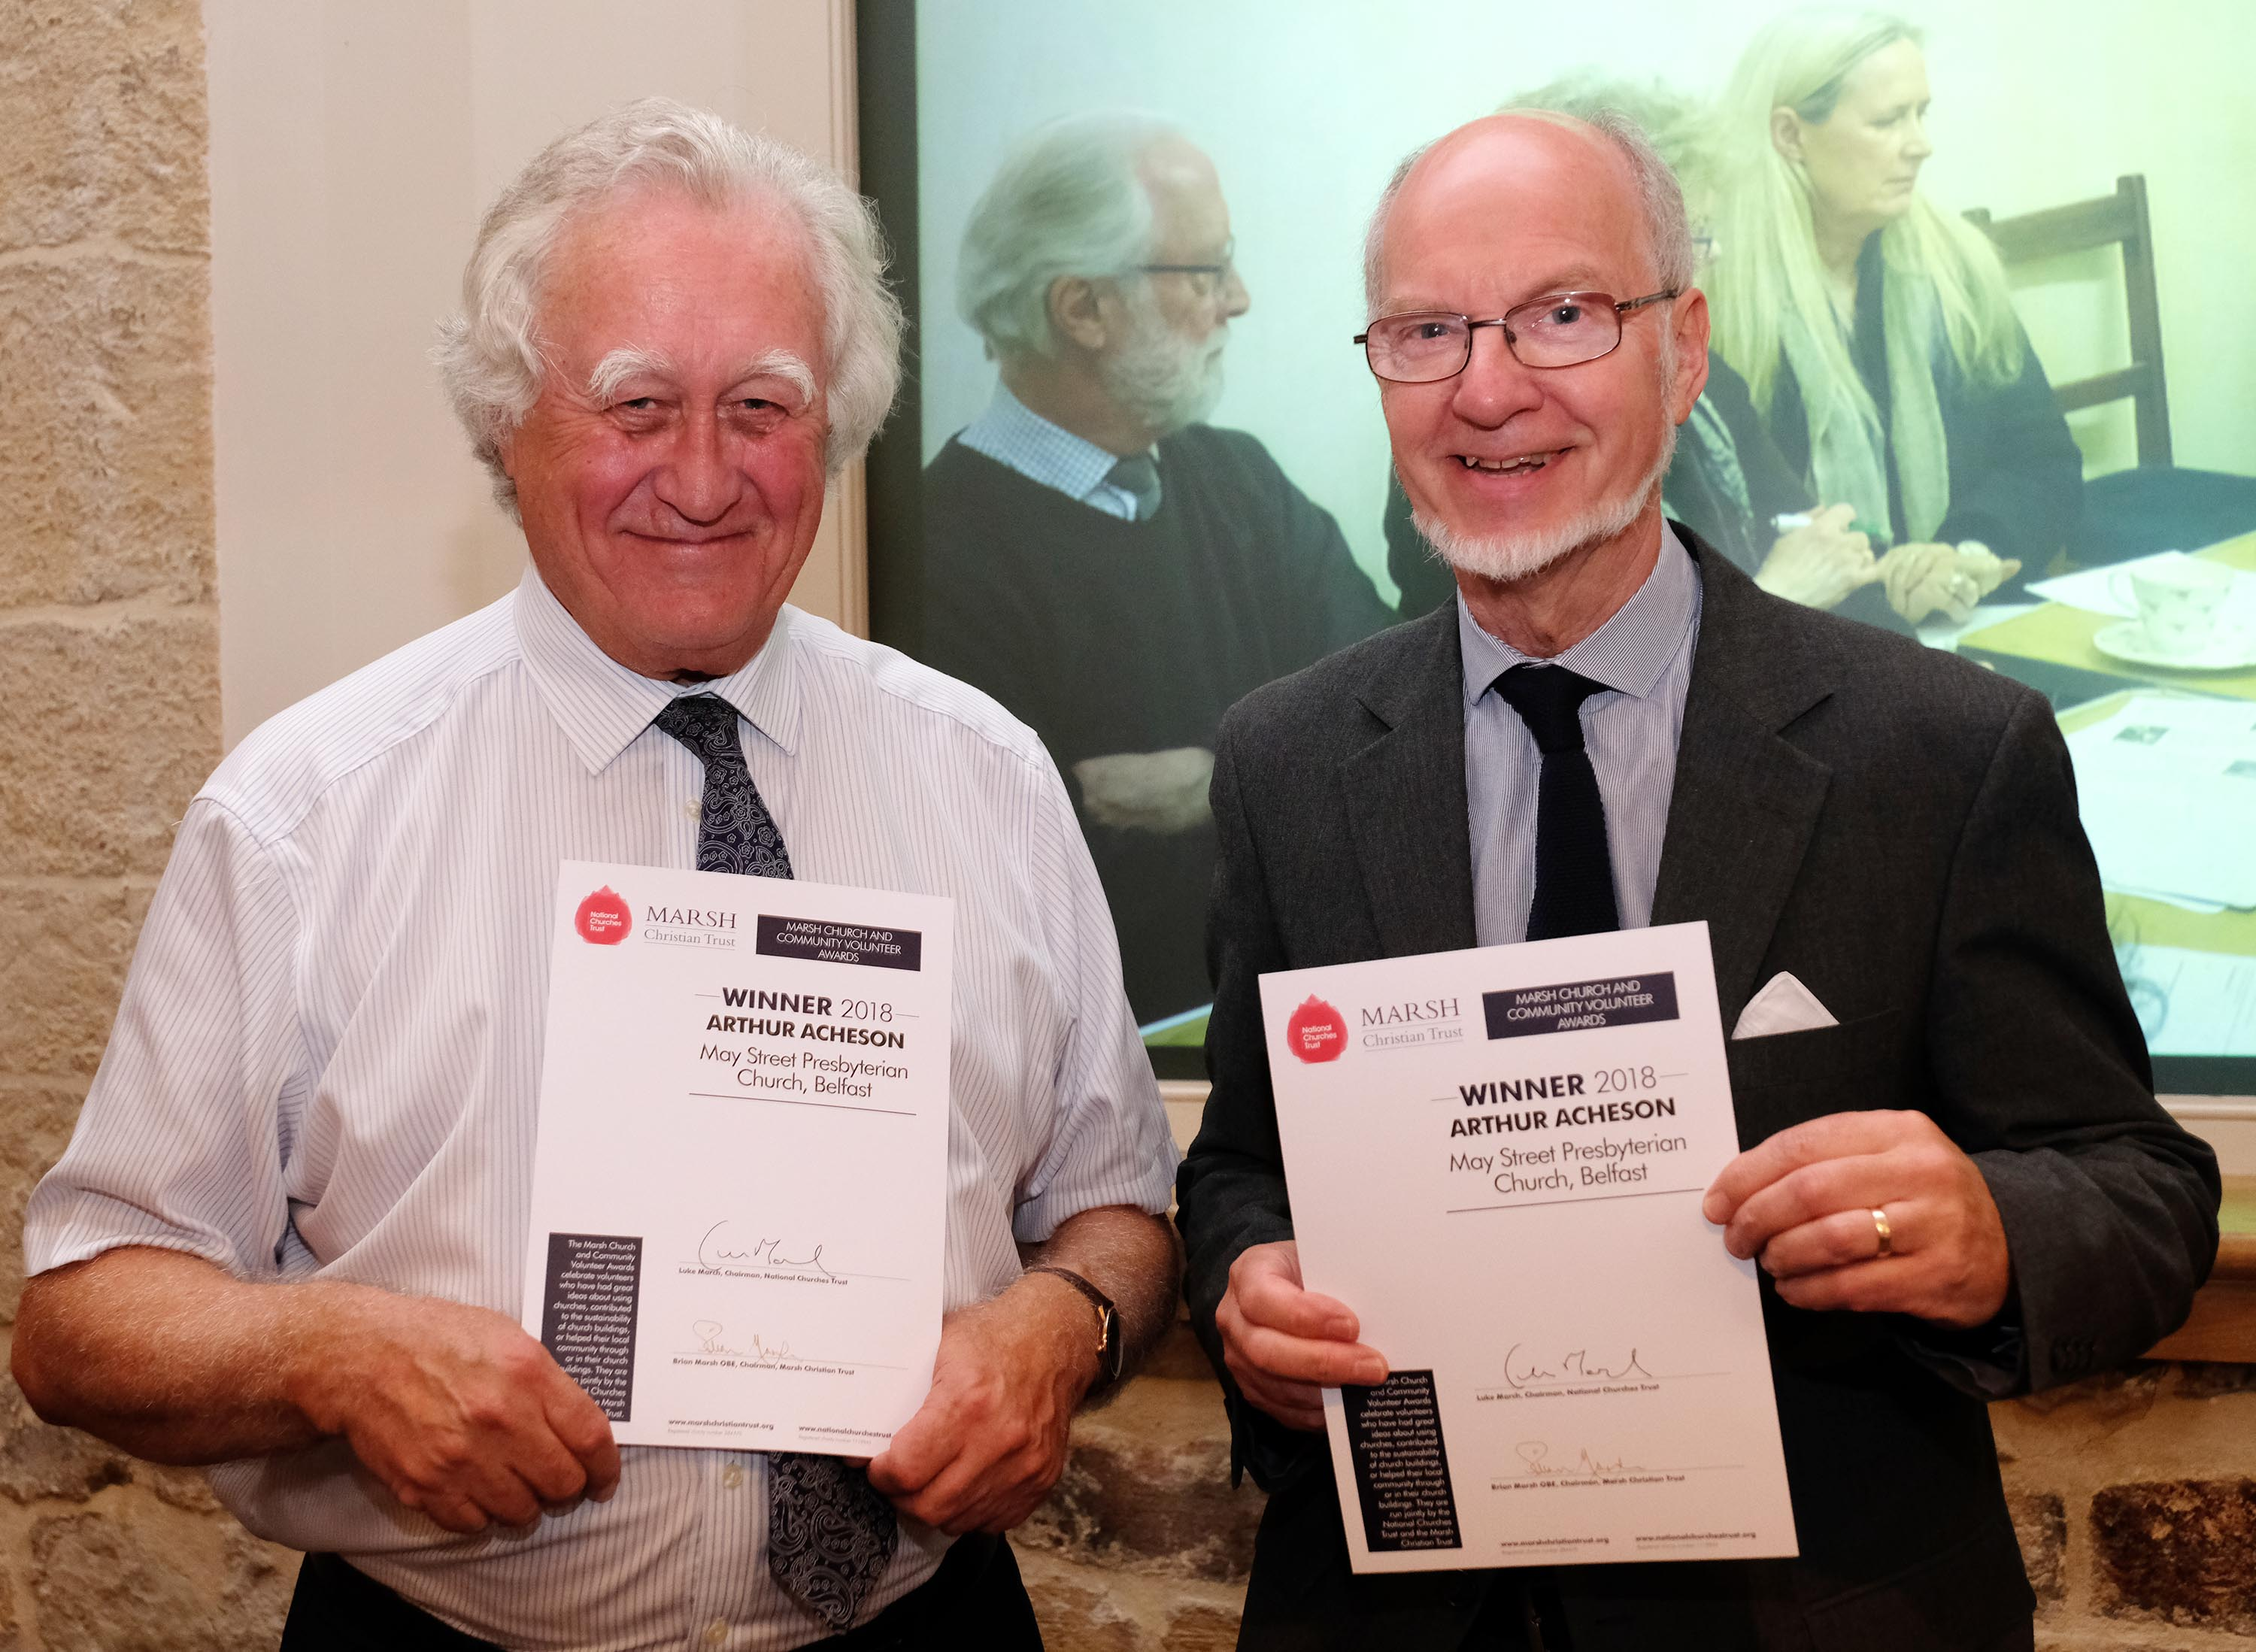 Arthur Acheson and Brian Marsh from the Marsh Christian Trust (c Mike Swift)